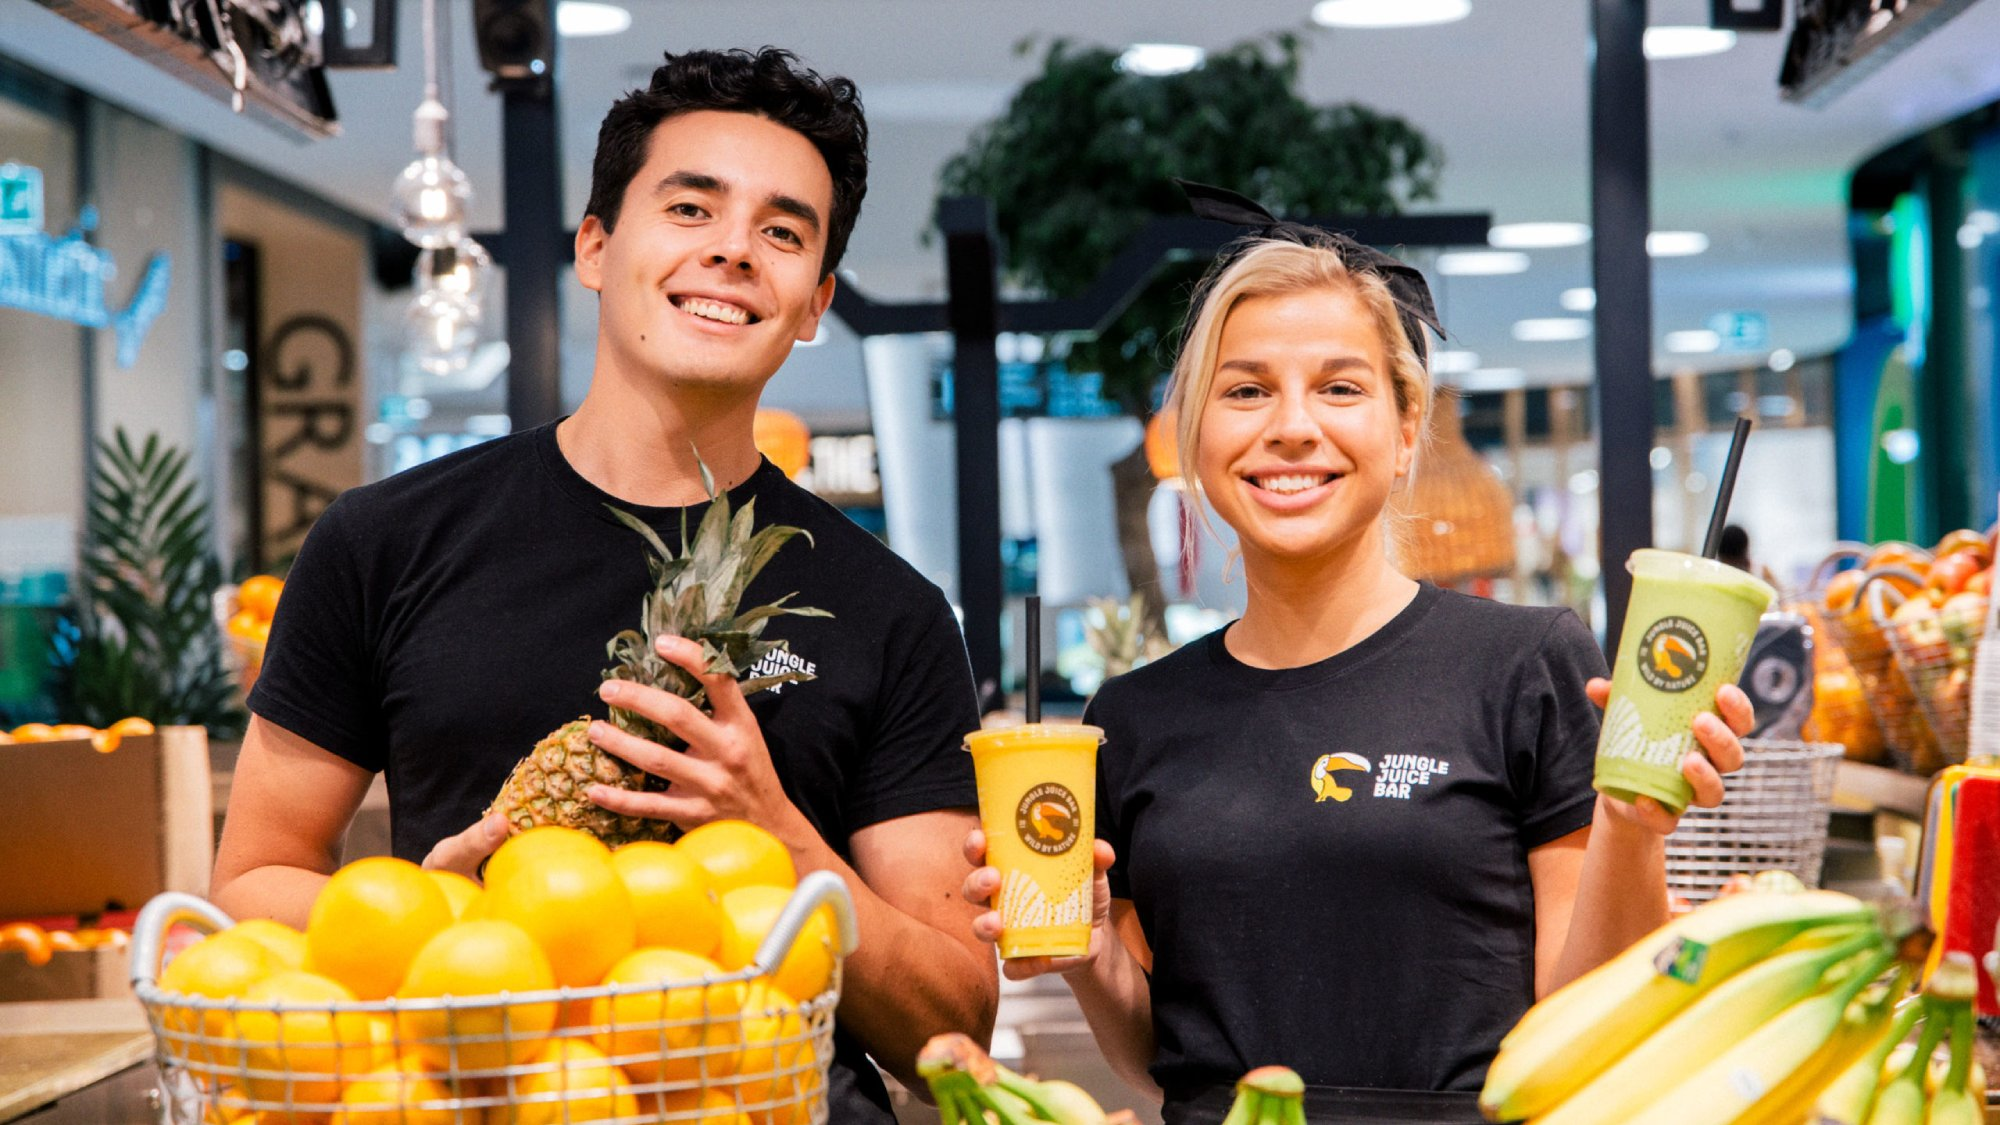 Juice makers smiling behind a fruit table